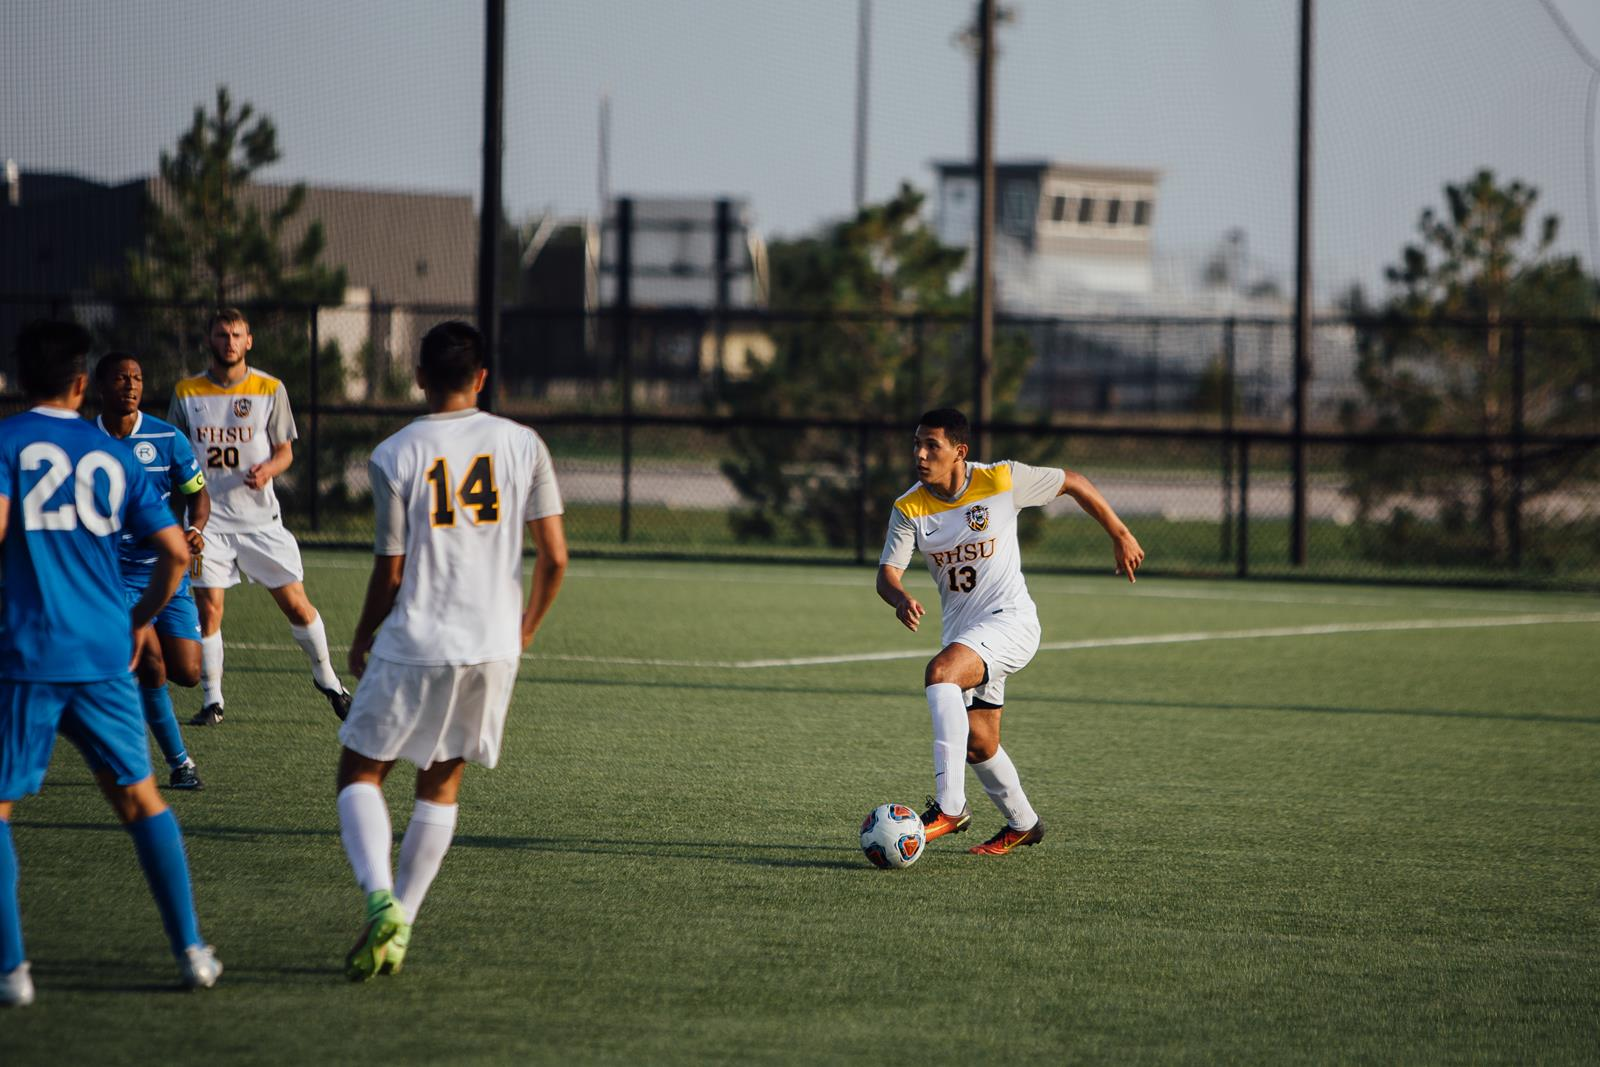 cbc42160f0a8 Tigers Gear Up For Conference Play At Home - FHSU Athletics